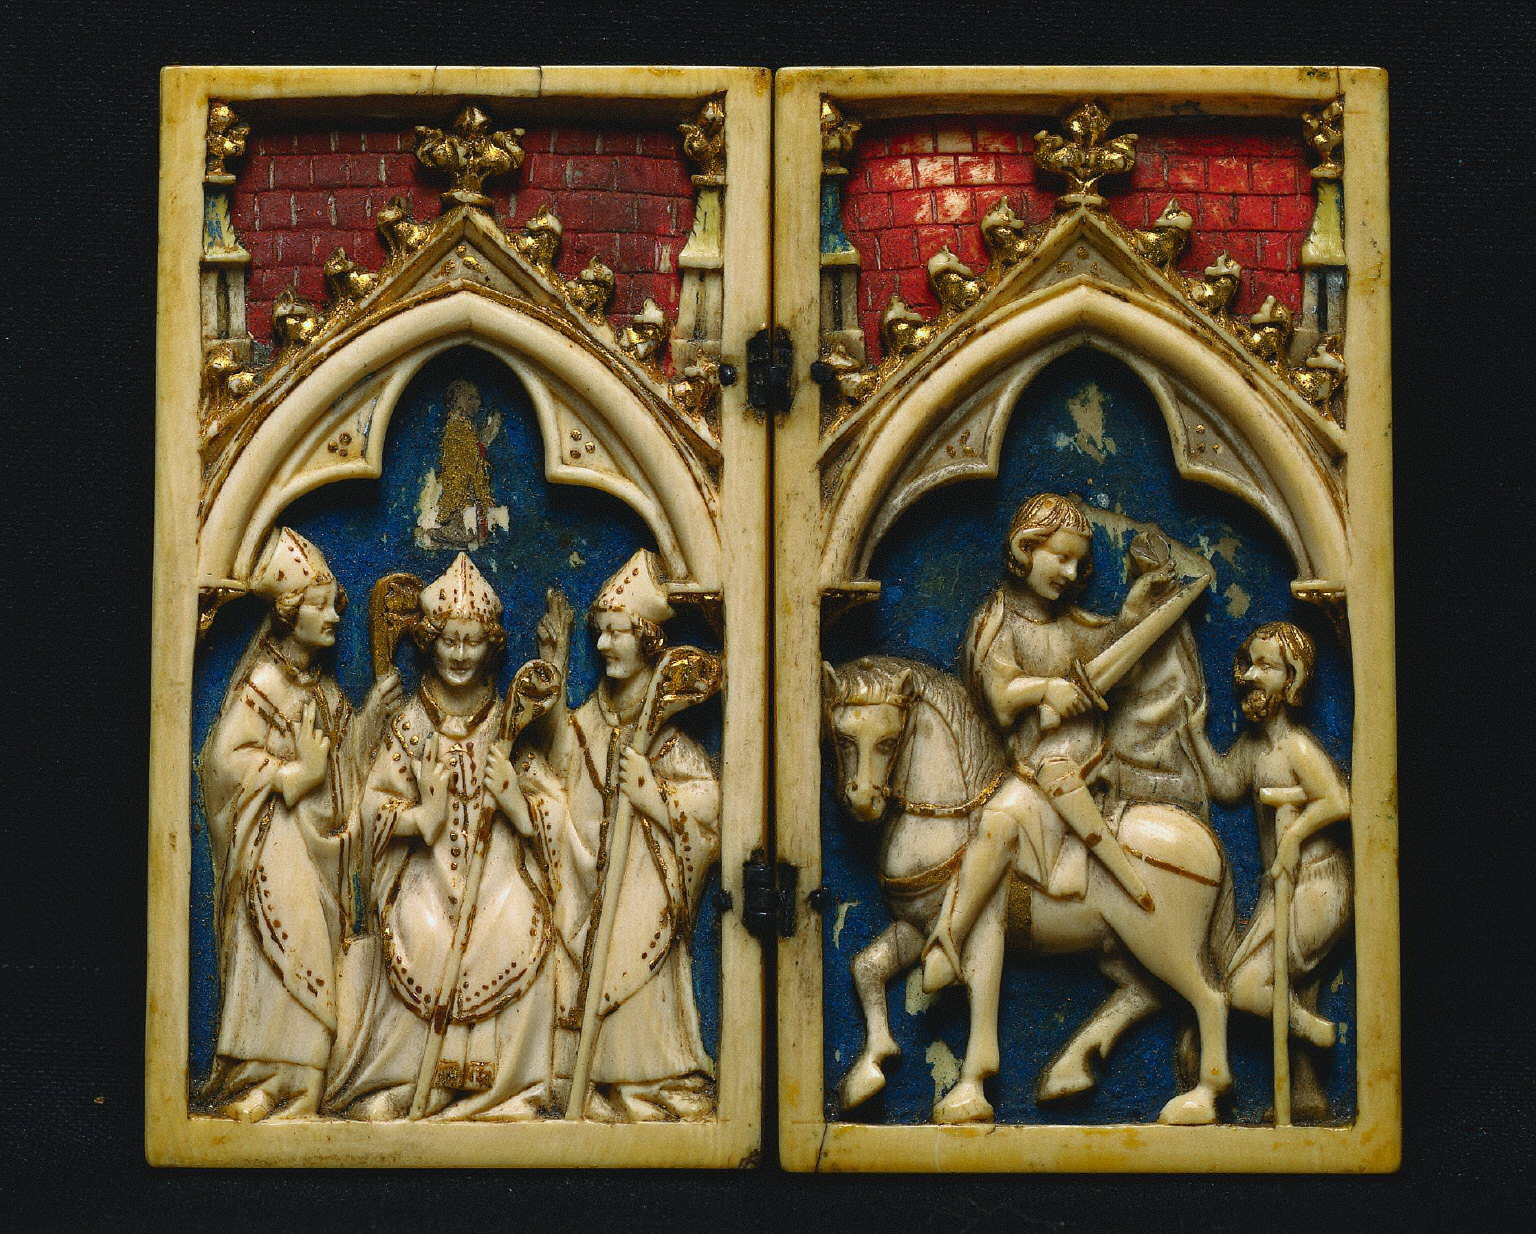 Diptych: The Life of Saint Martin of Tours